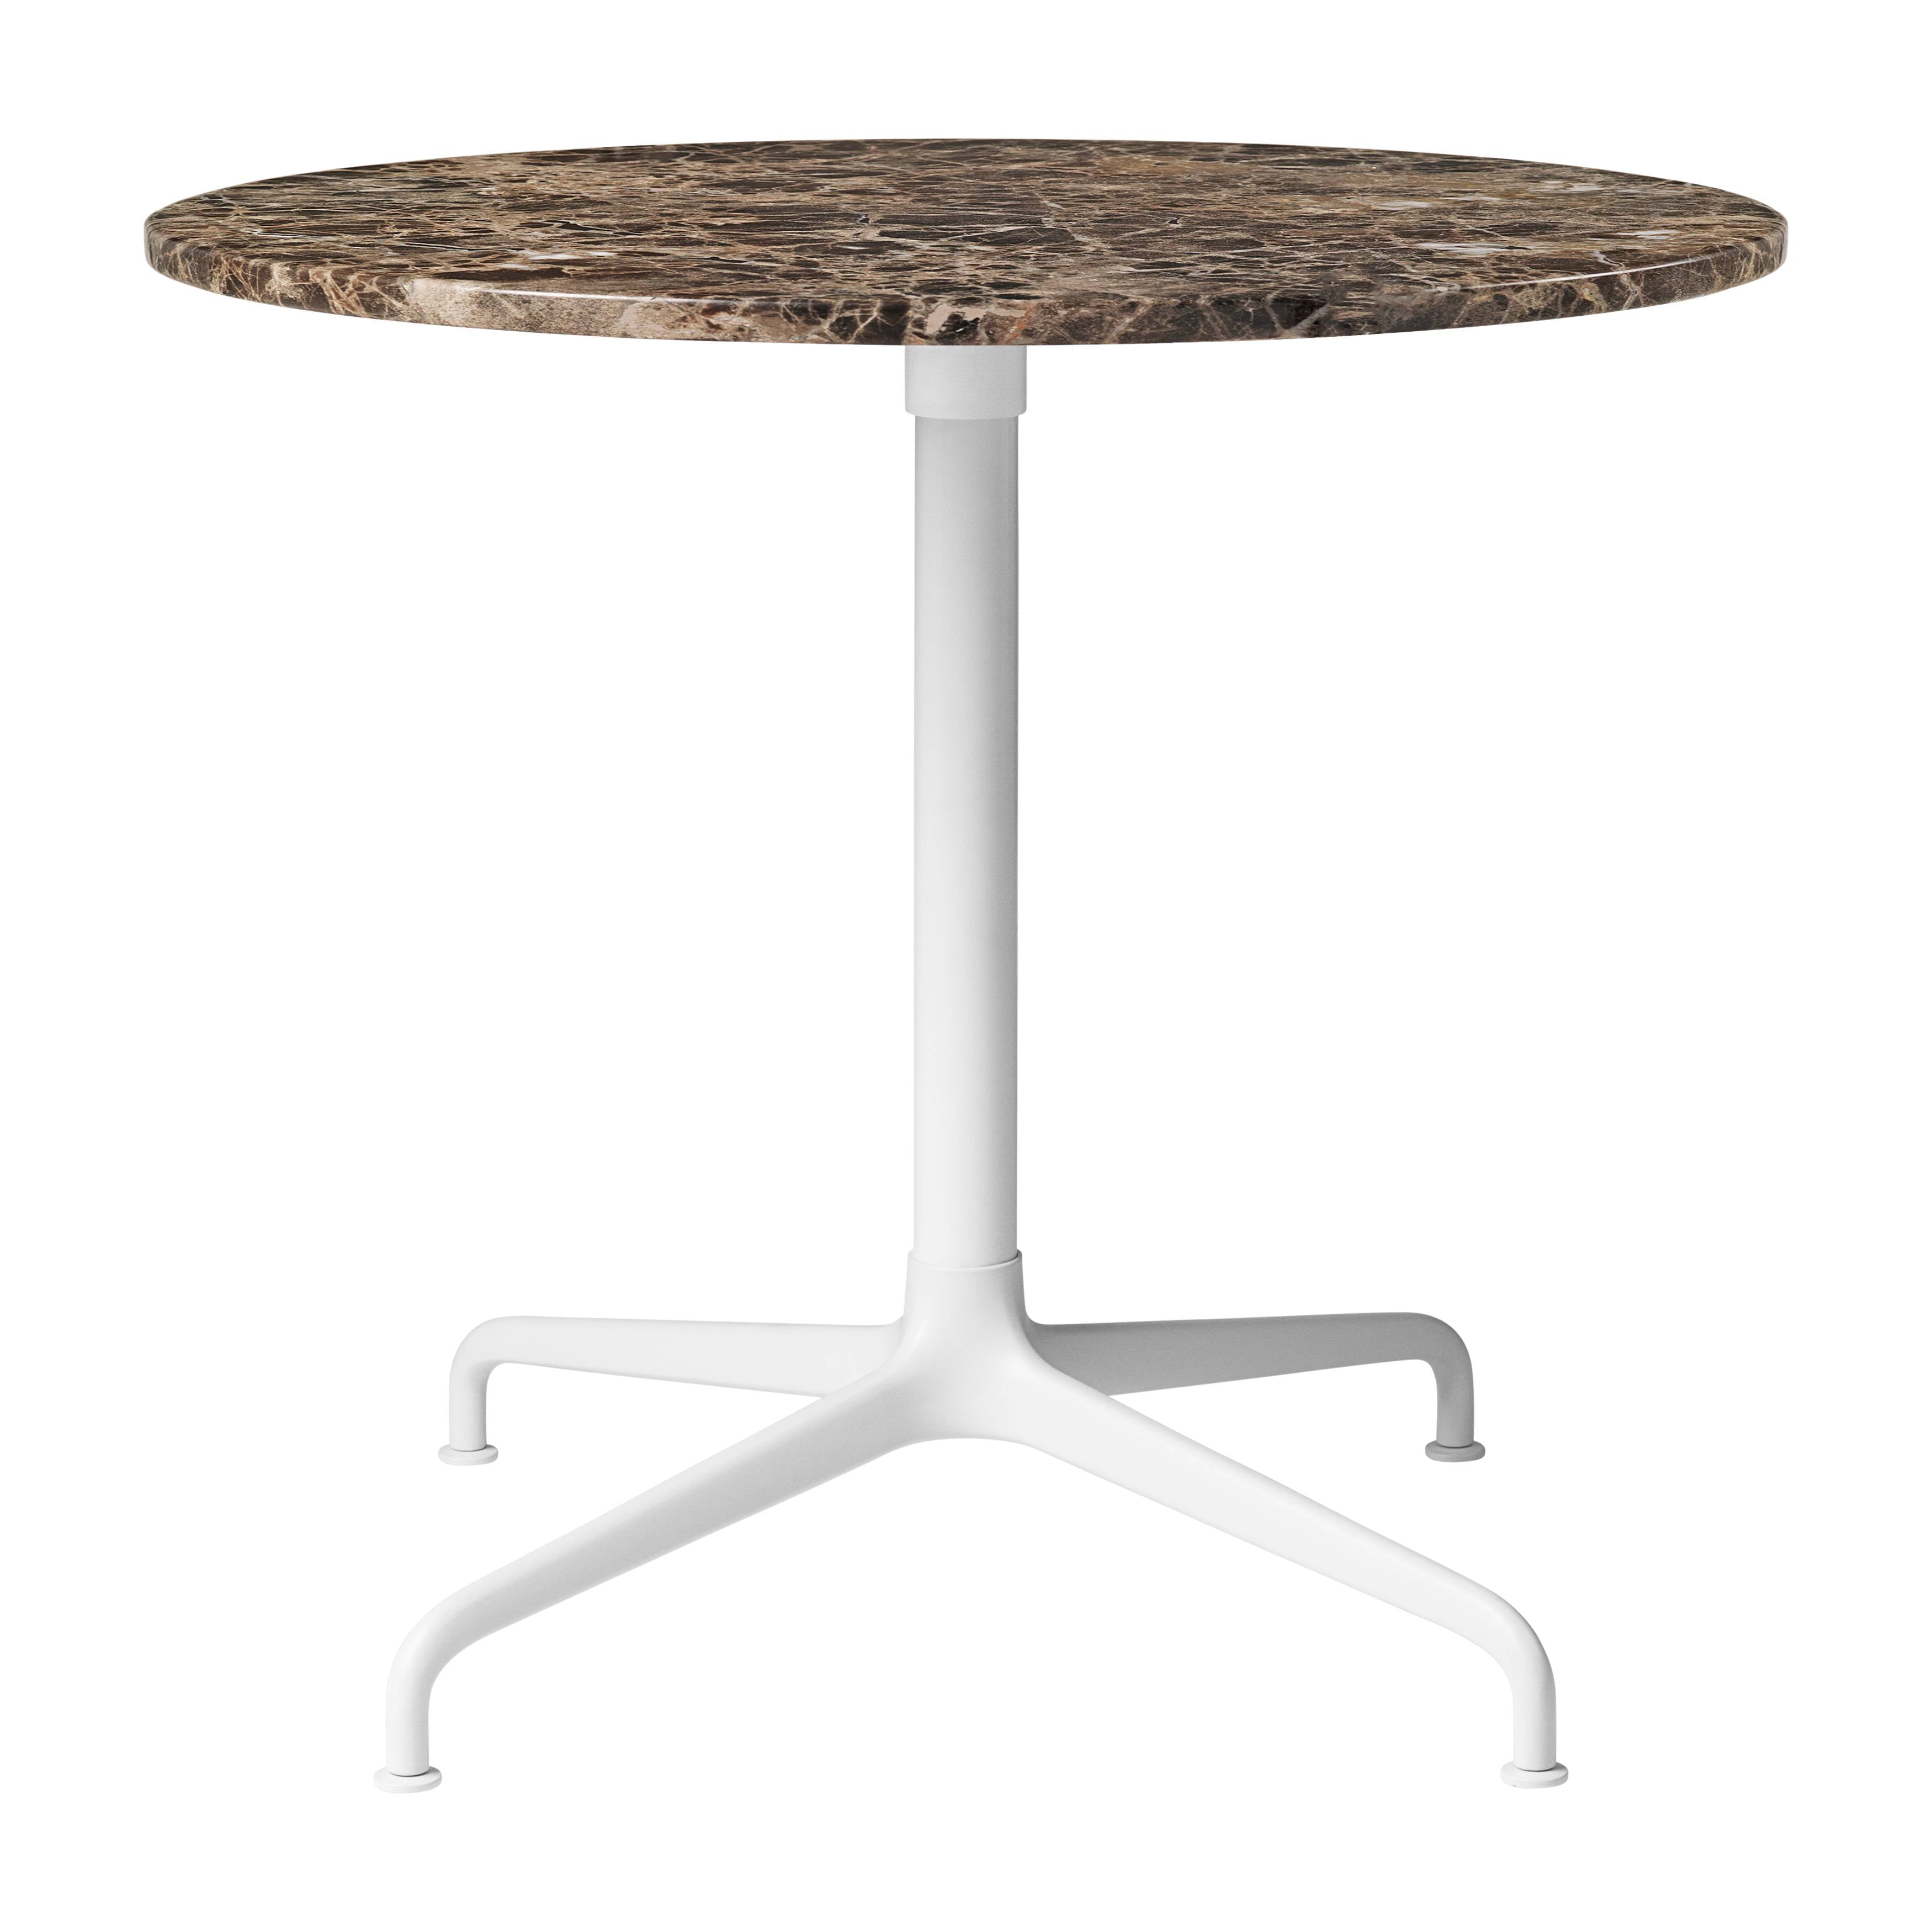 Beetle Lounge Table: Round + Small + Brown Emperador Marble + Soft White Semi-Matte Base